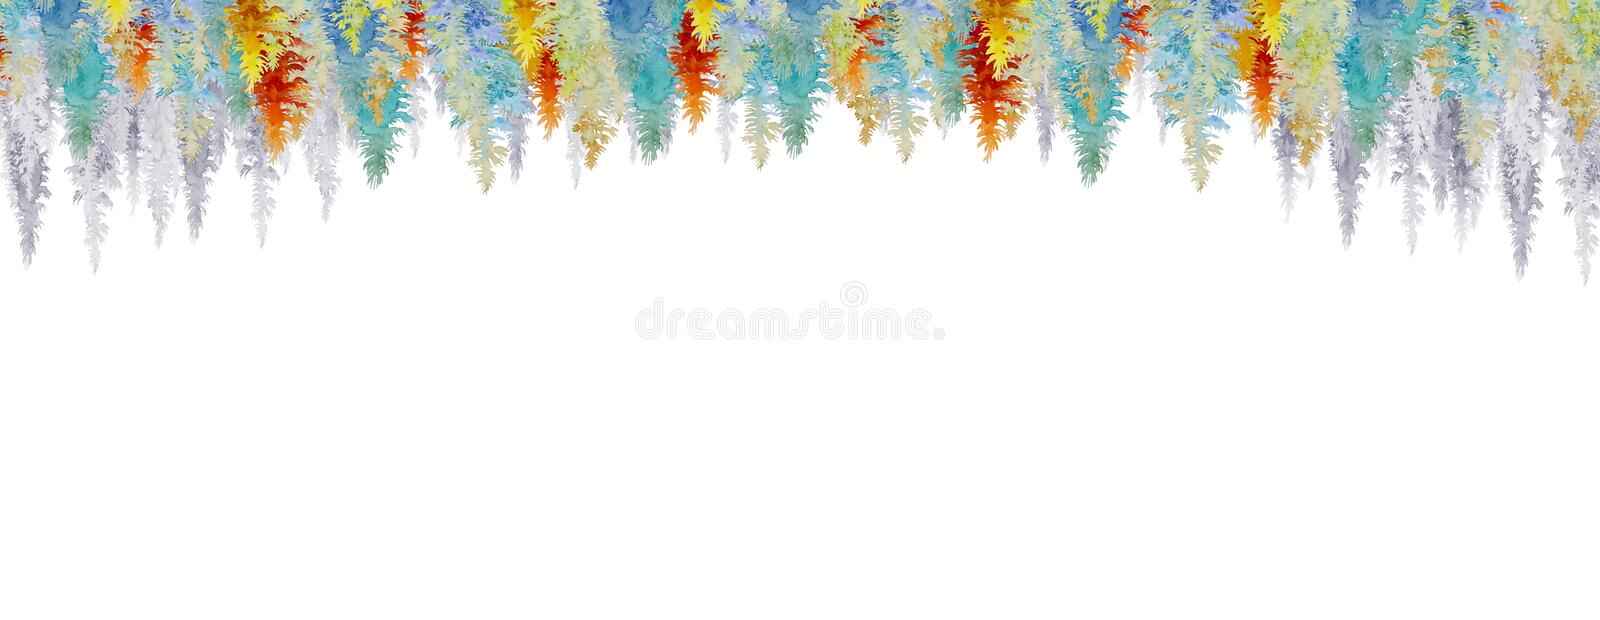 Watercolor painting, isolated the flora background vector illustration